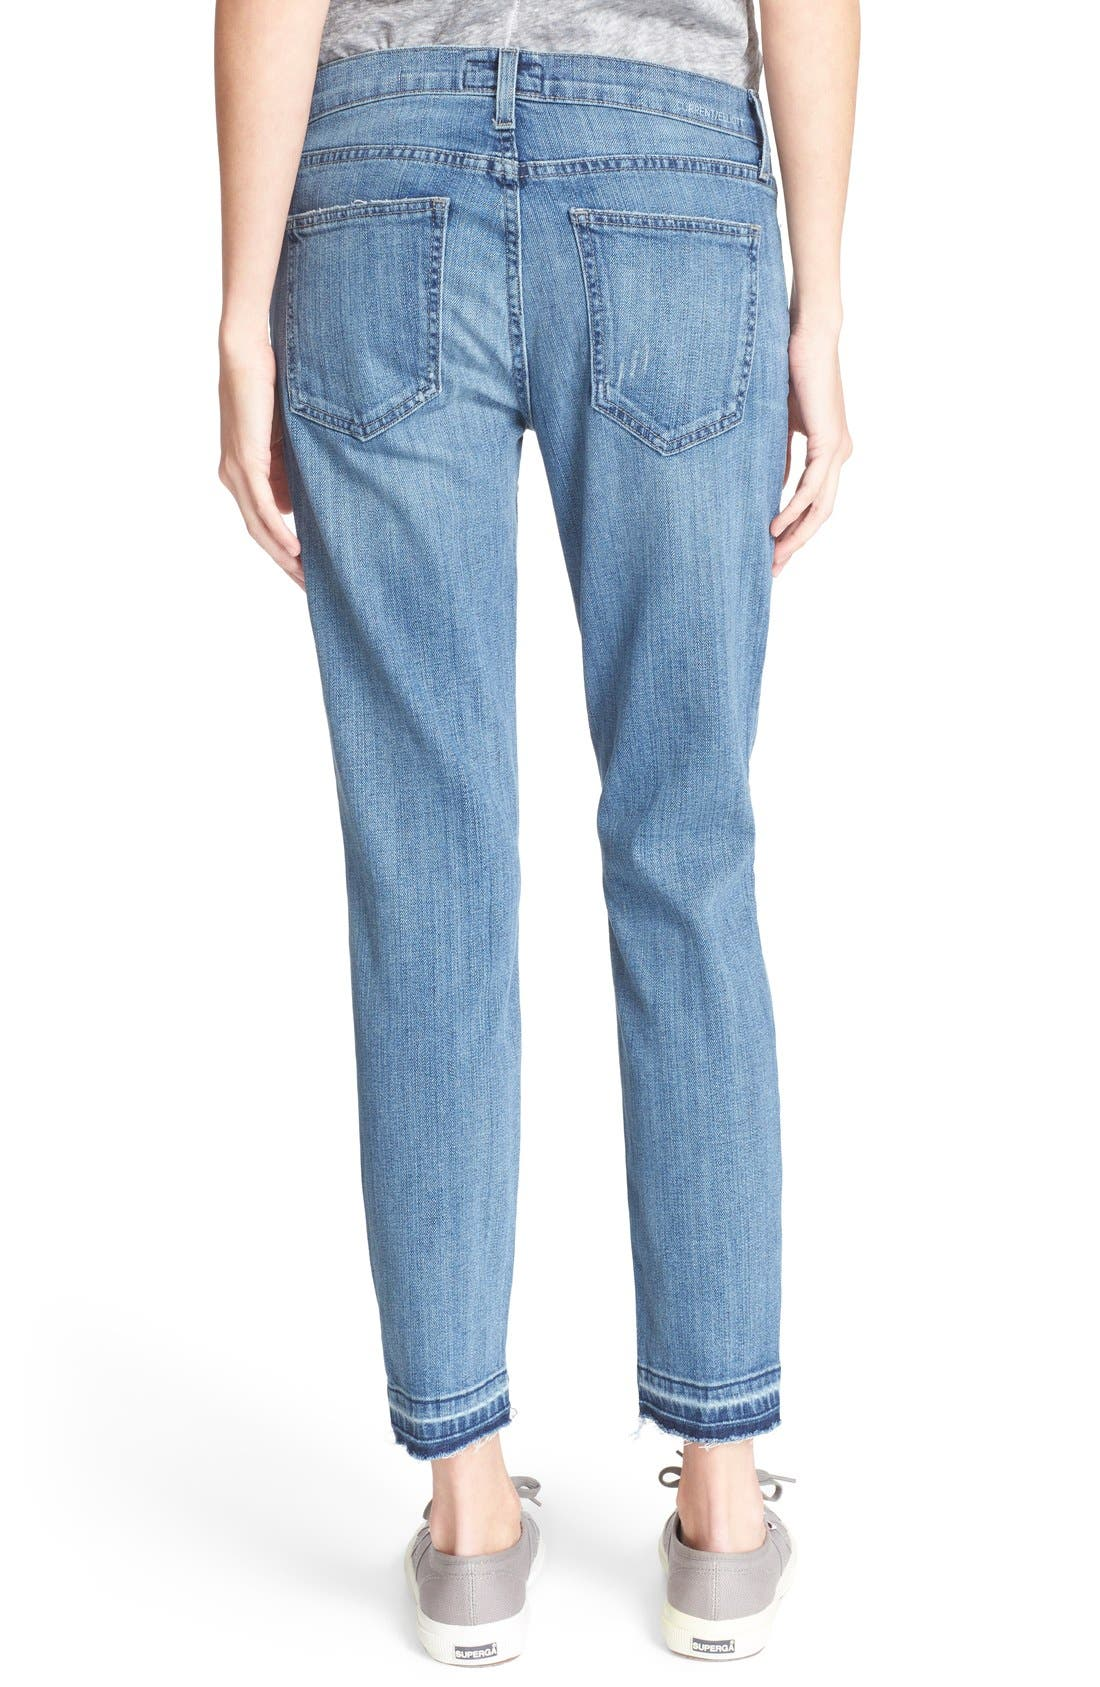 Alternate Image 2  - Current/Elliott 'The Stiletto' Stretch Jeans (Amour Released Hem)